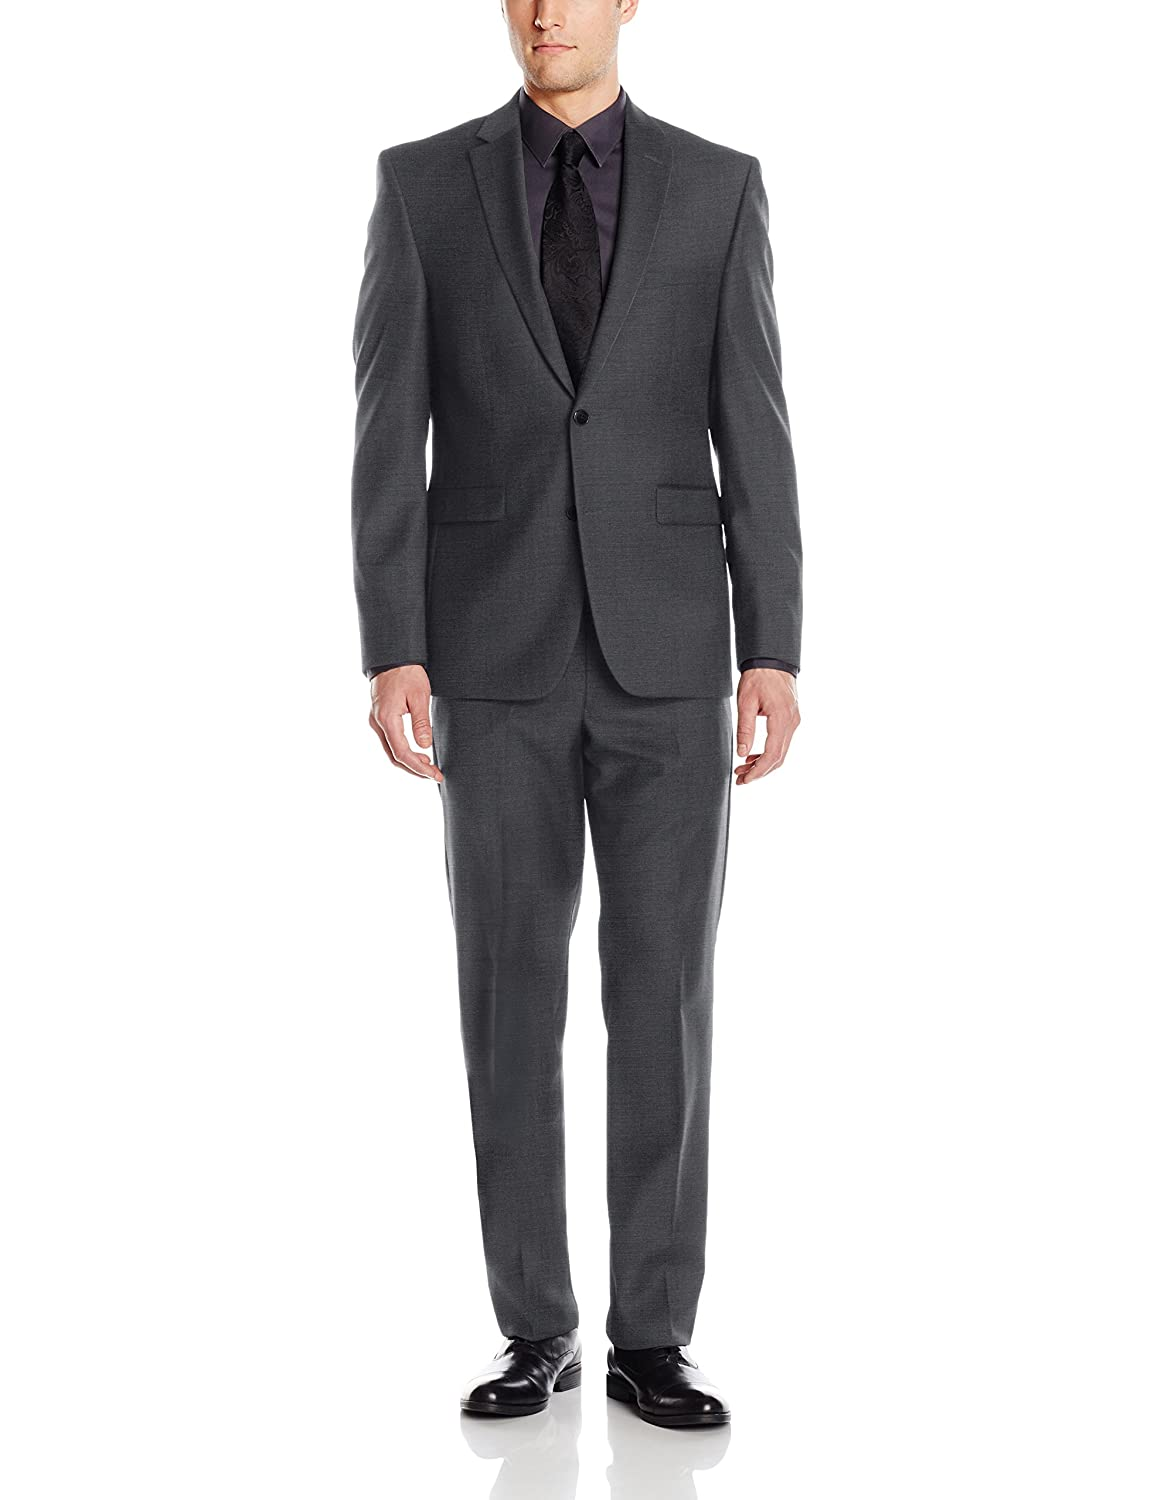 Vince Camuto Men s Two Button Slim Fit Solid Suit at Amazon Men s Clothing  store  ea687b089